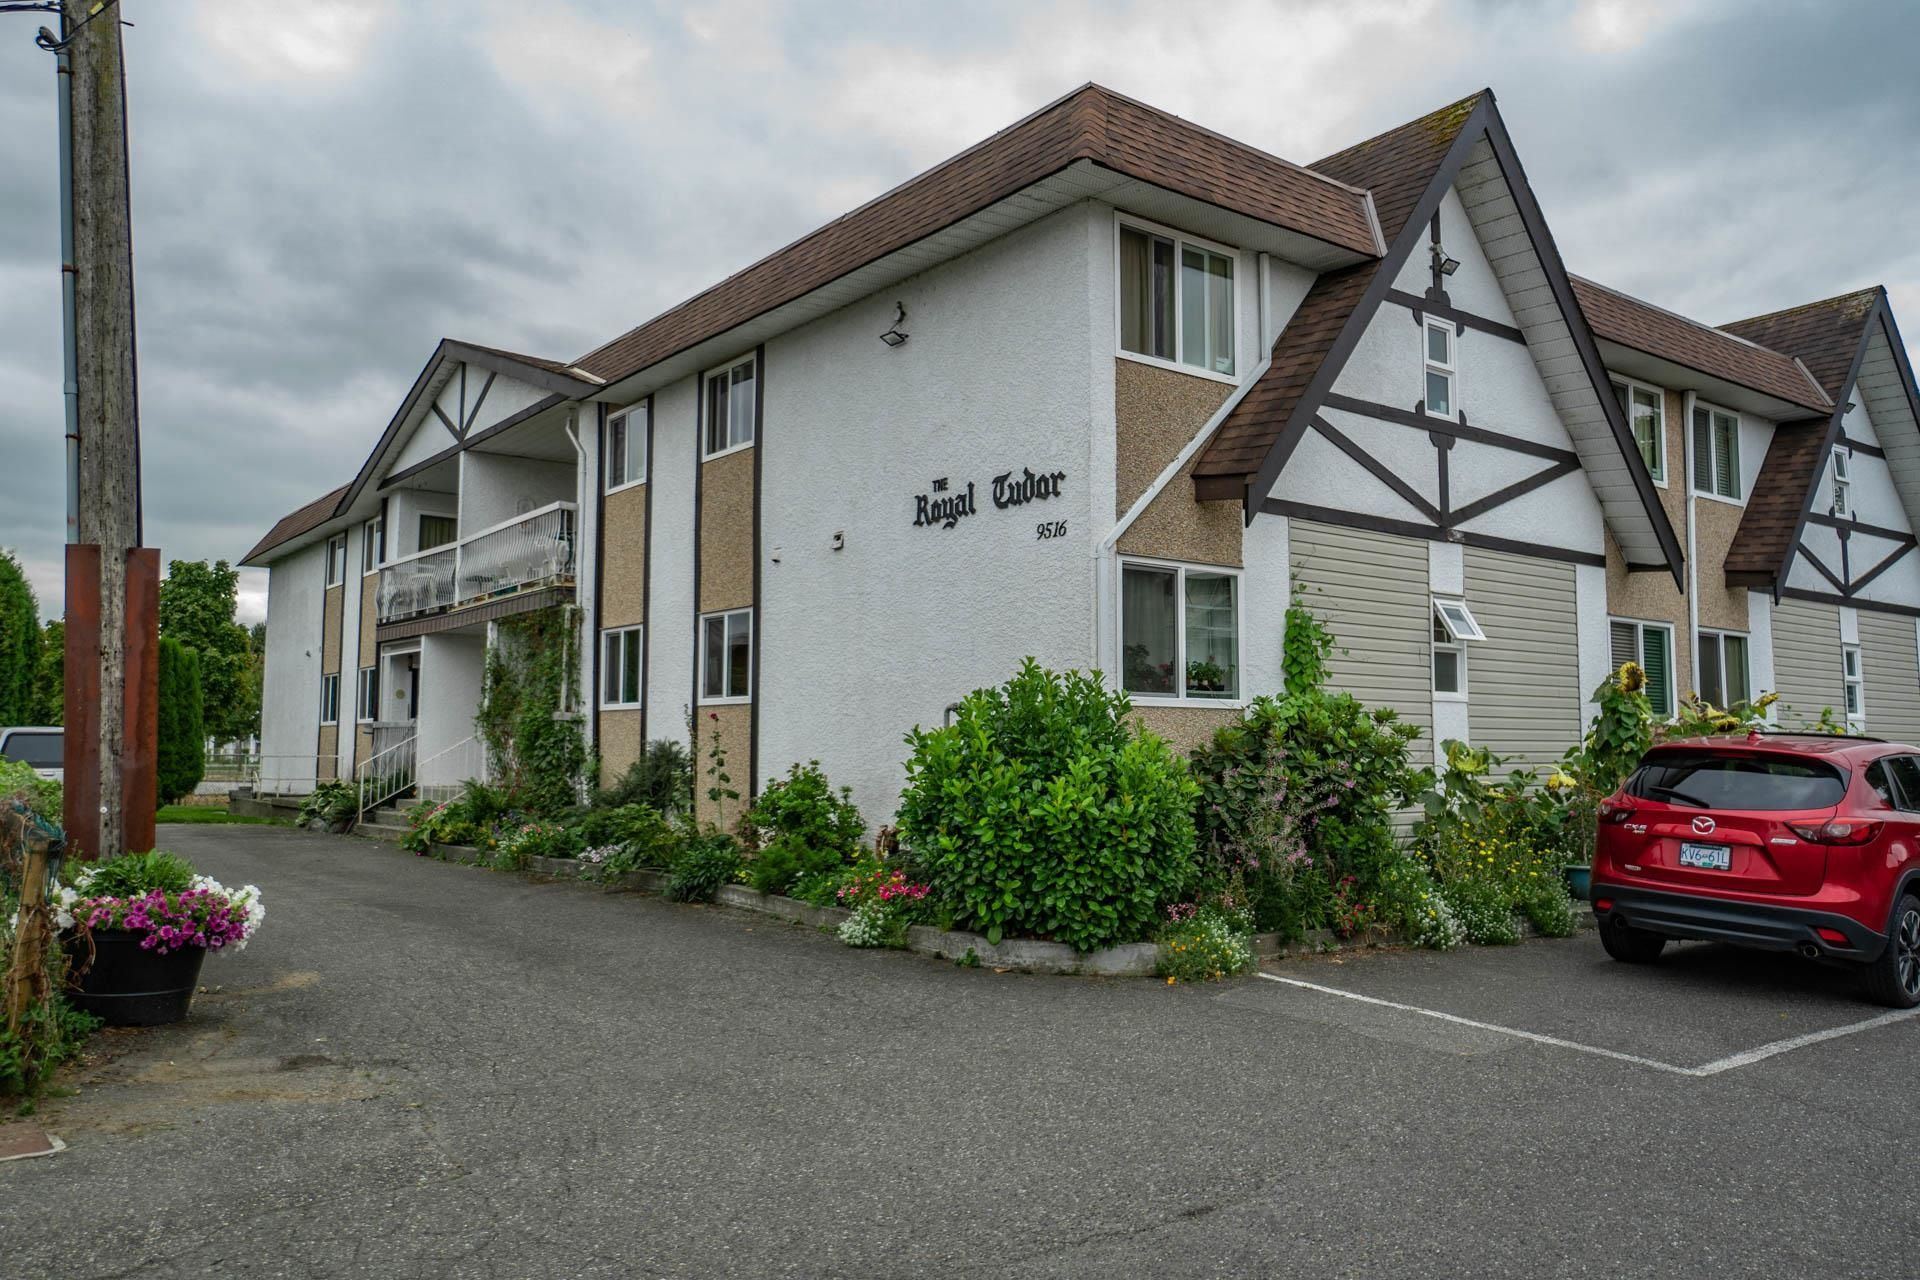 """Main Photo: 101 9516 ROTARY Street in Chilliwack: Chilliwack N Yale-Well Condo for sale in """"Royal Tudor"""" : MLS®# R2613300"""